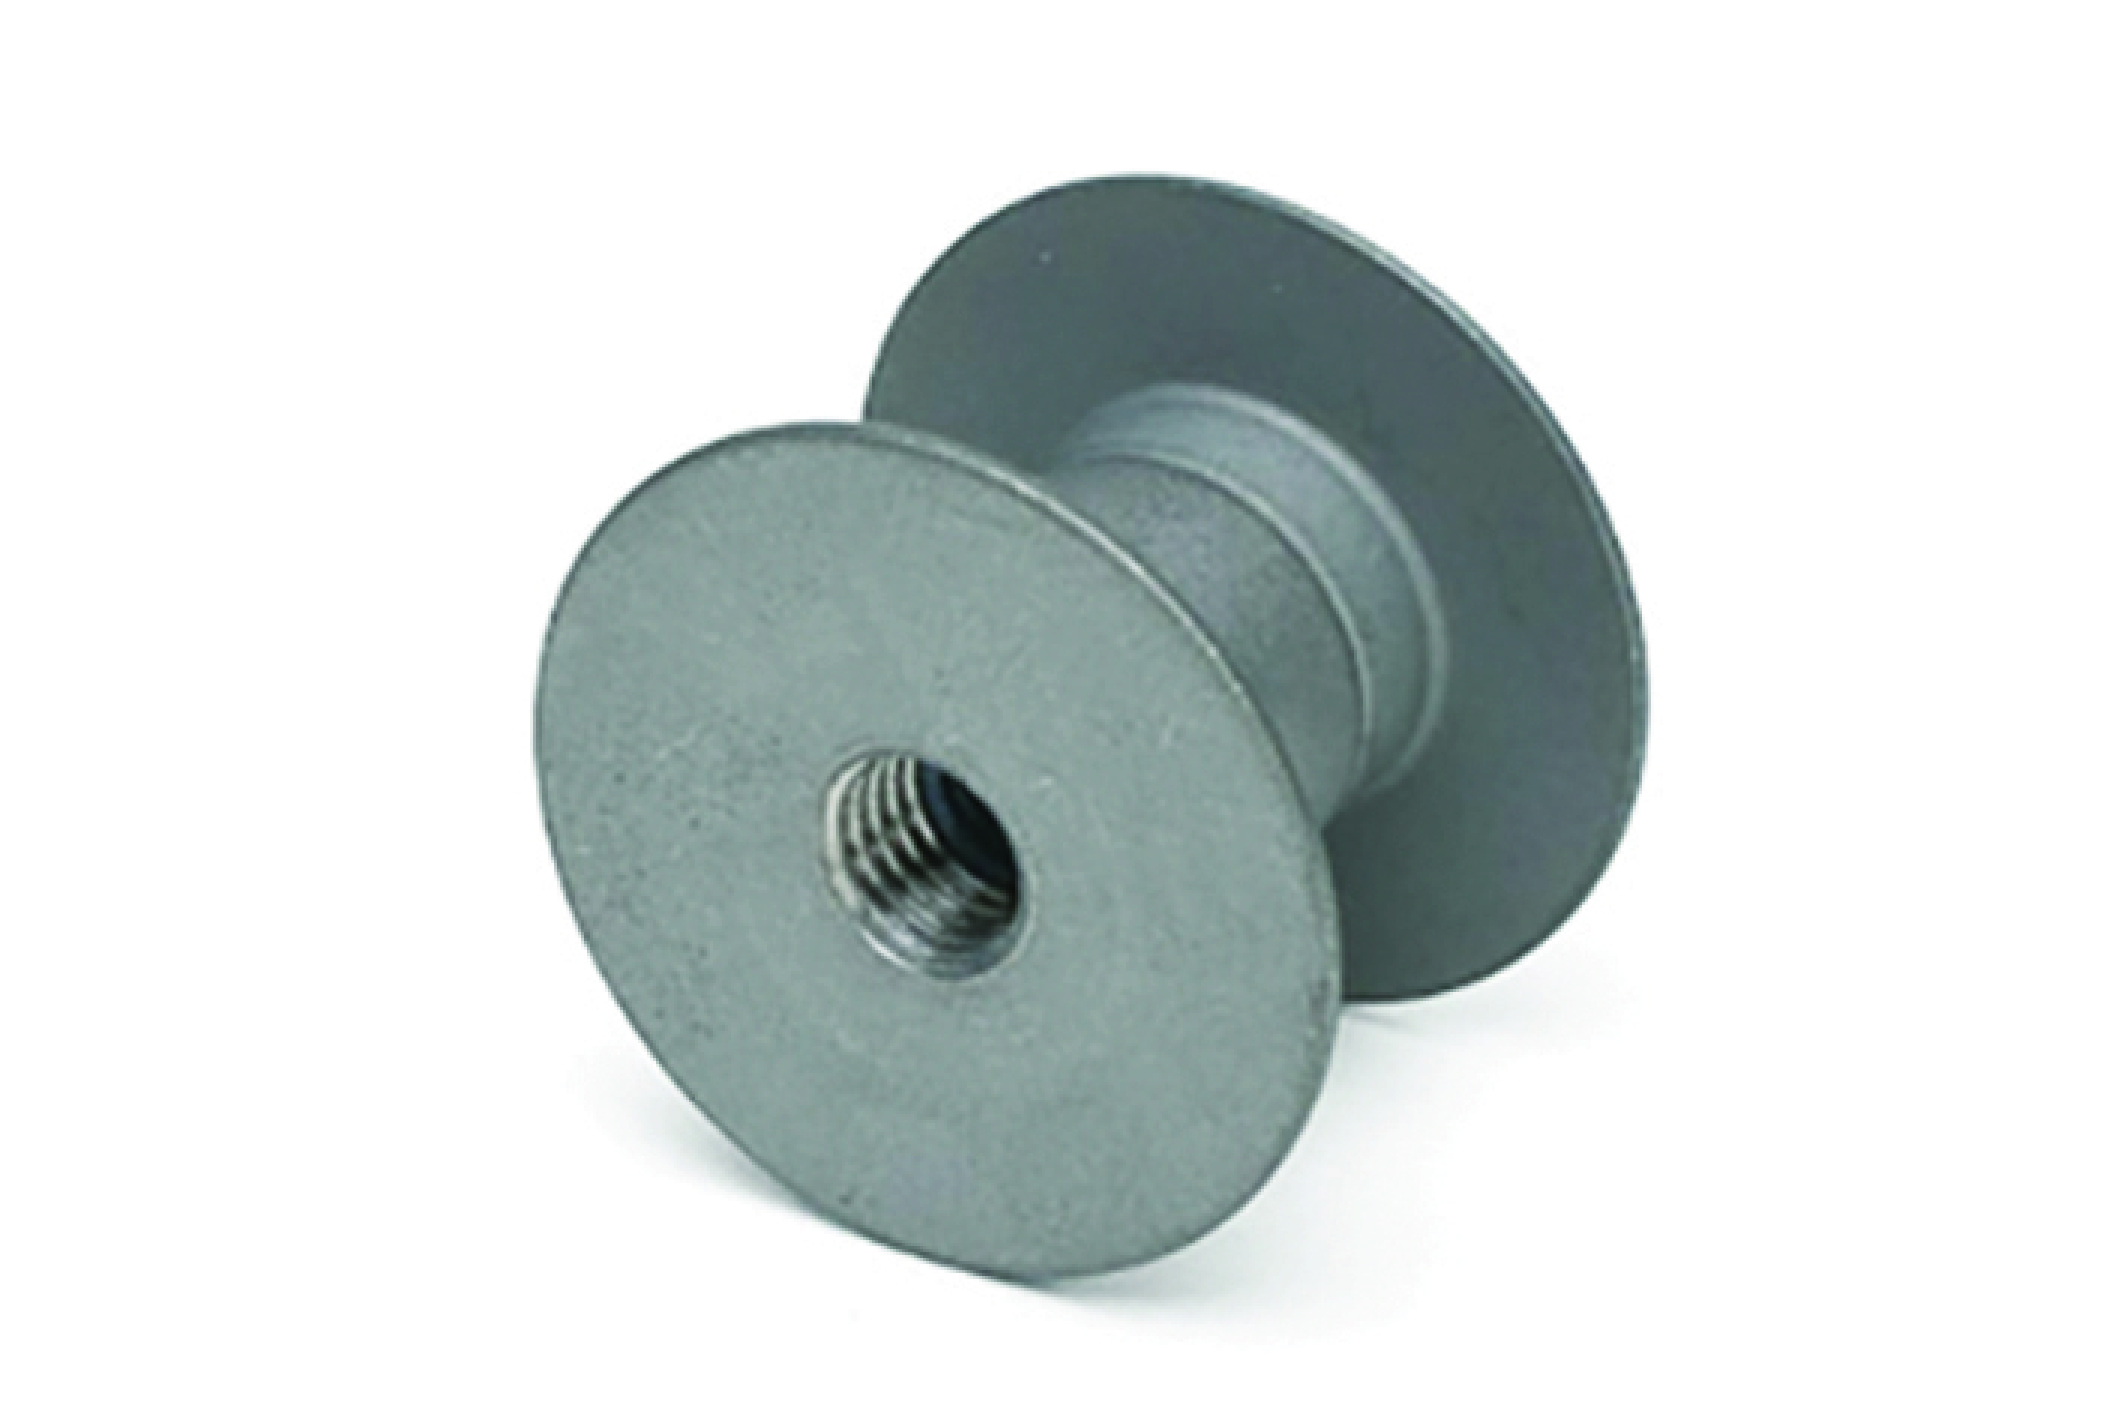 Spacer Bushing, Locking Thread